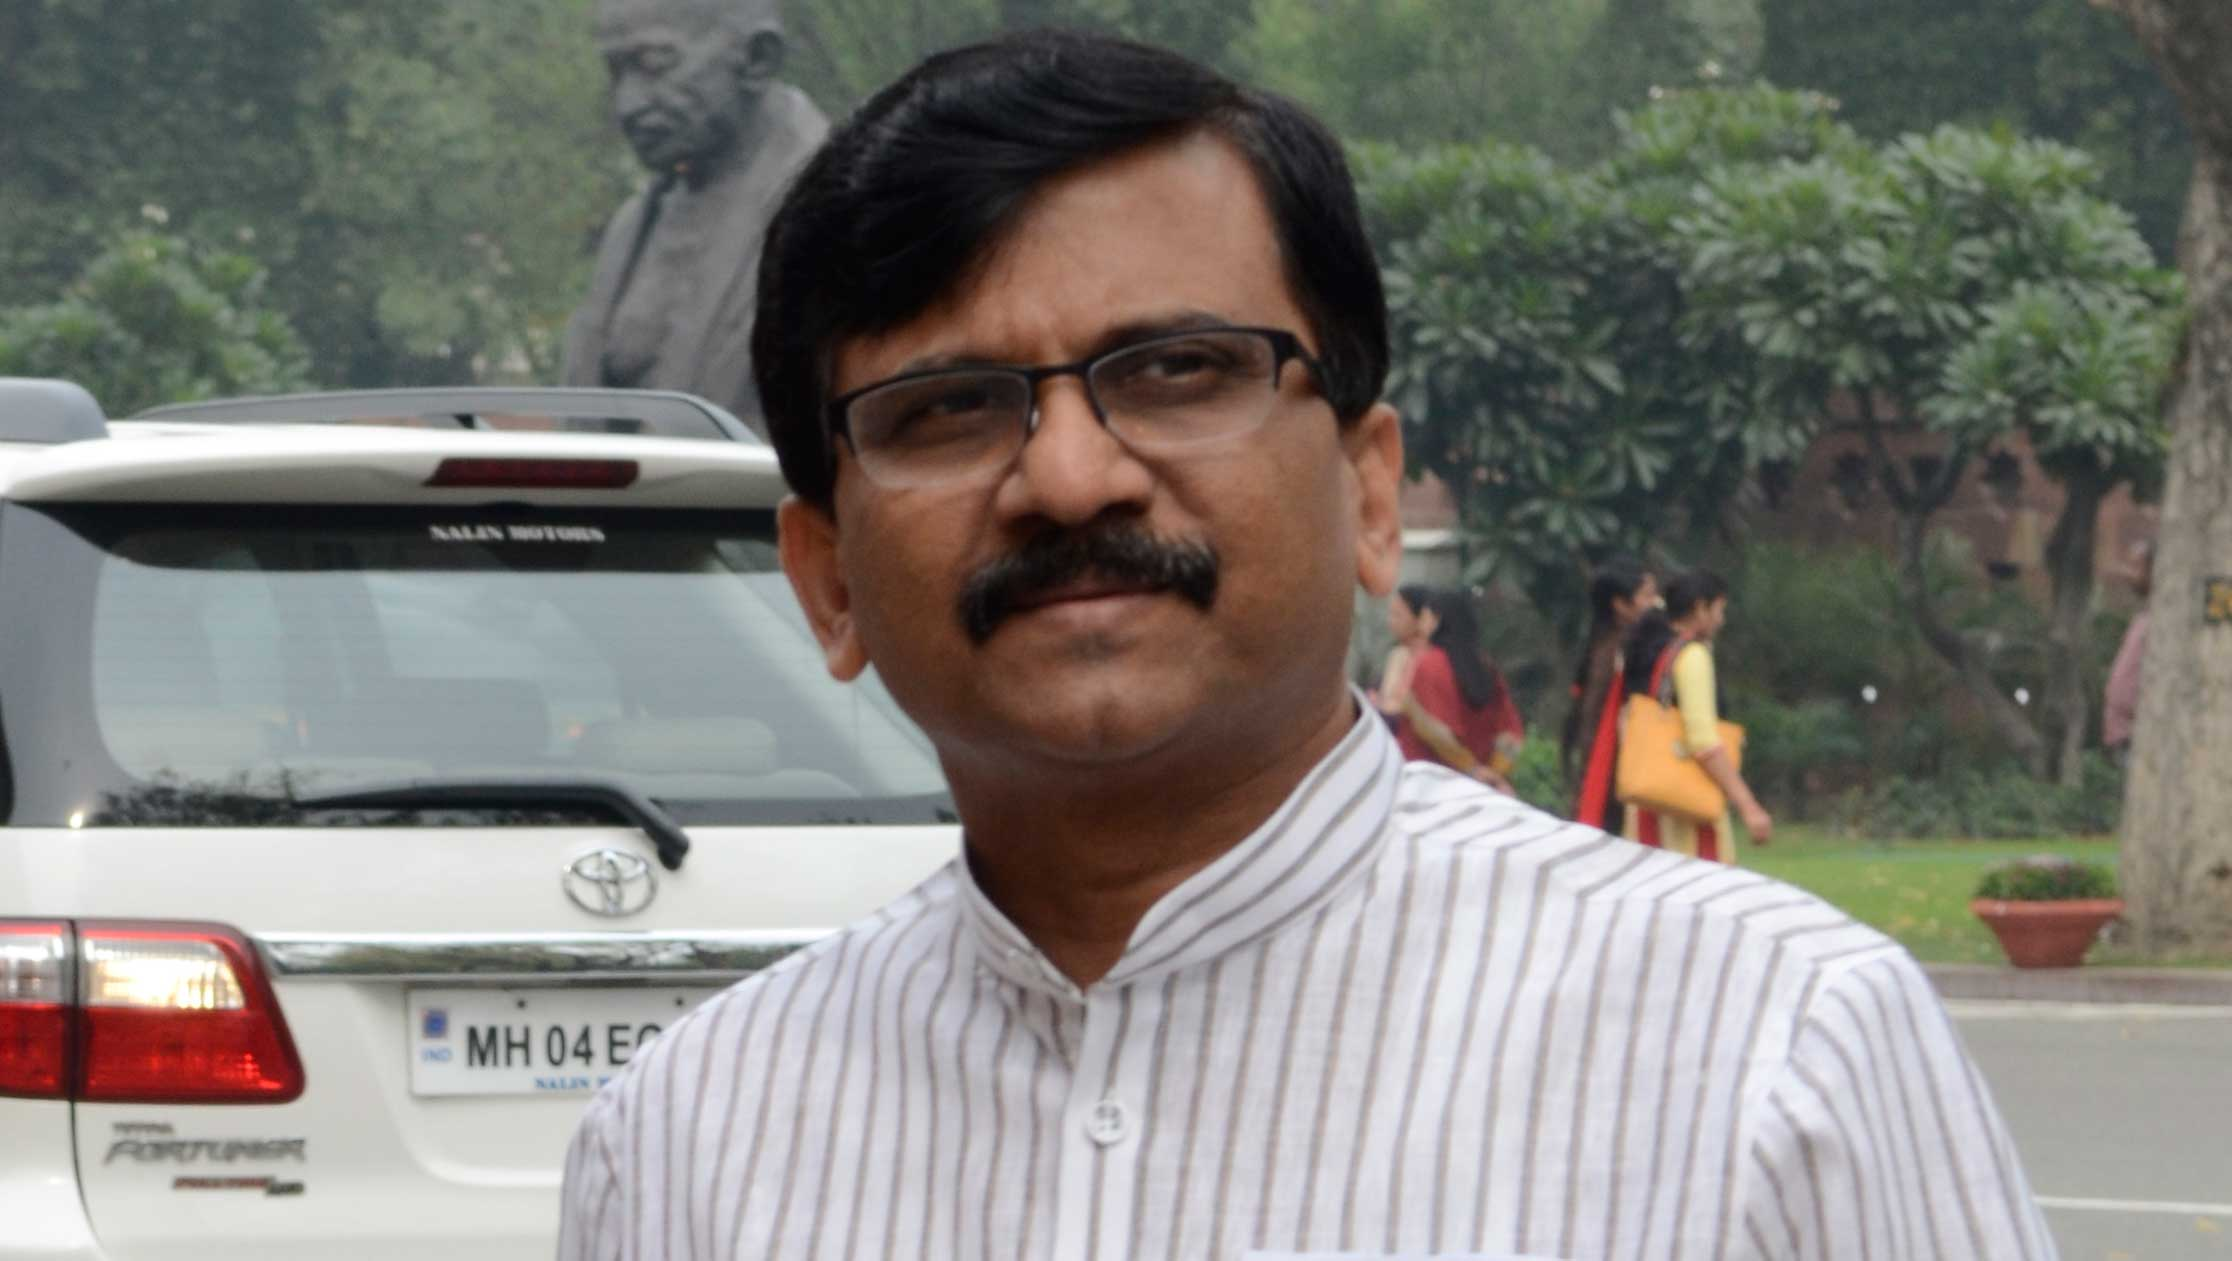 Rajya Sabha member Sanjay Raut (in picture) also claimed that the poll plunge of Sena chief Uddhav Thackeray's son Aaditya Thackeray will change the state's